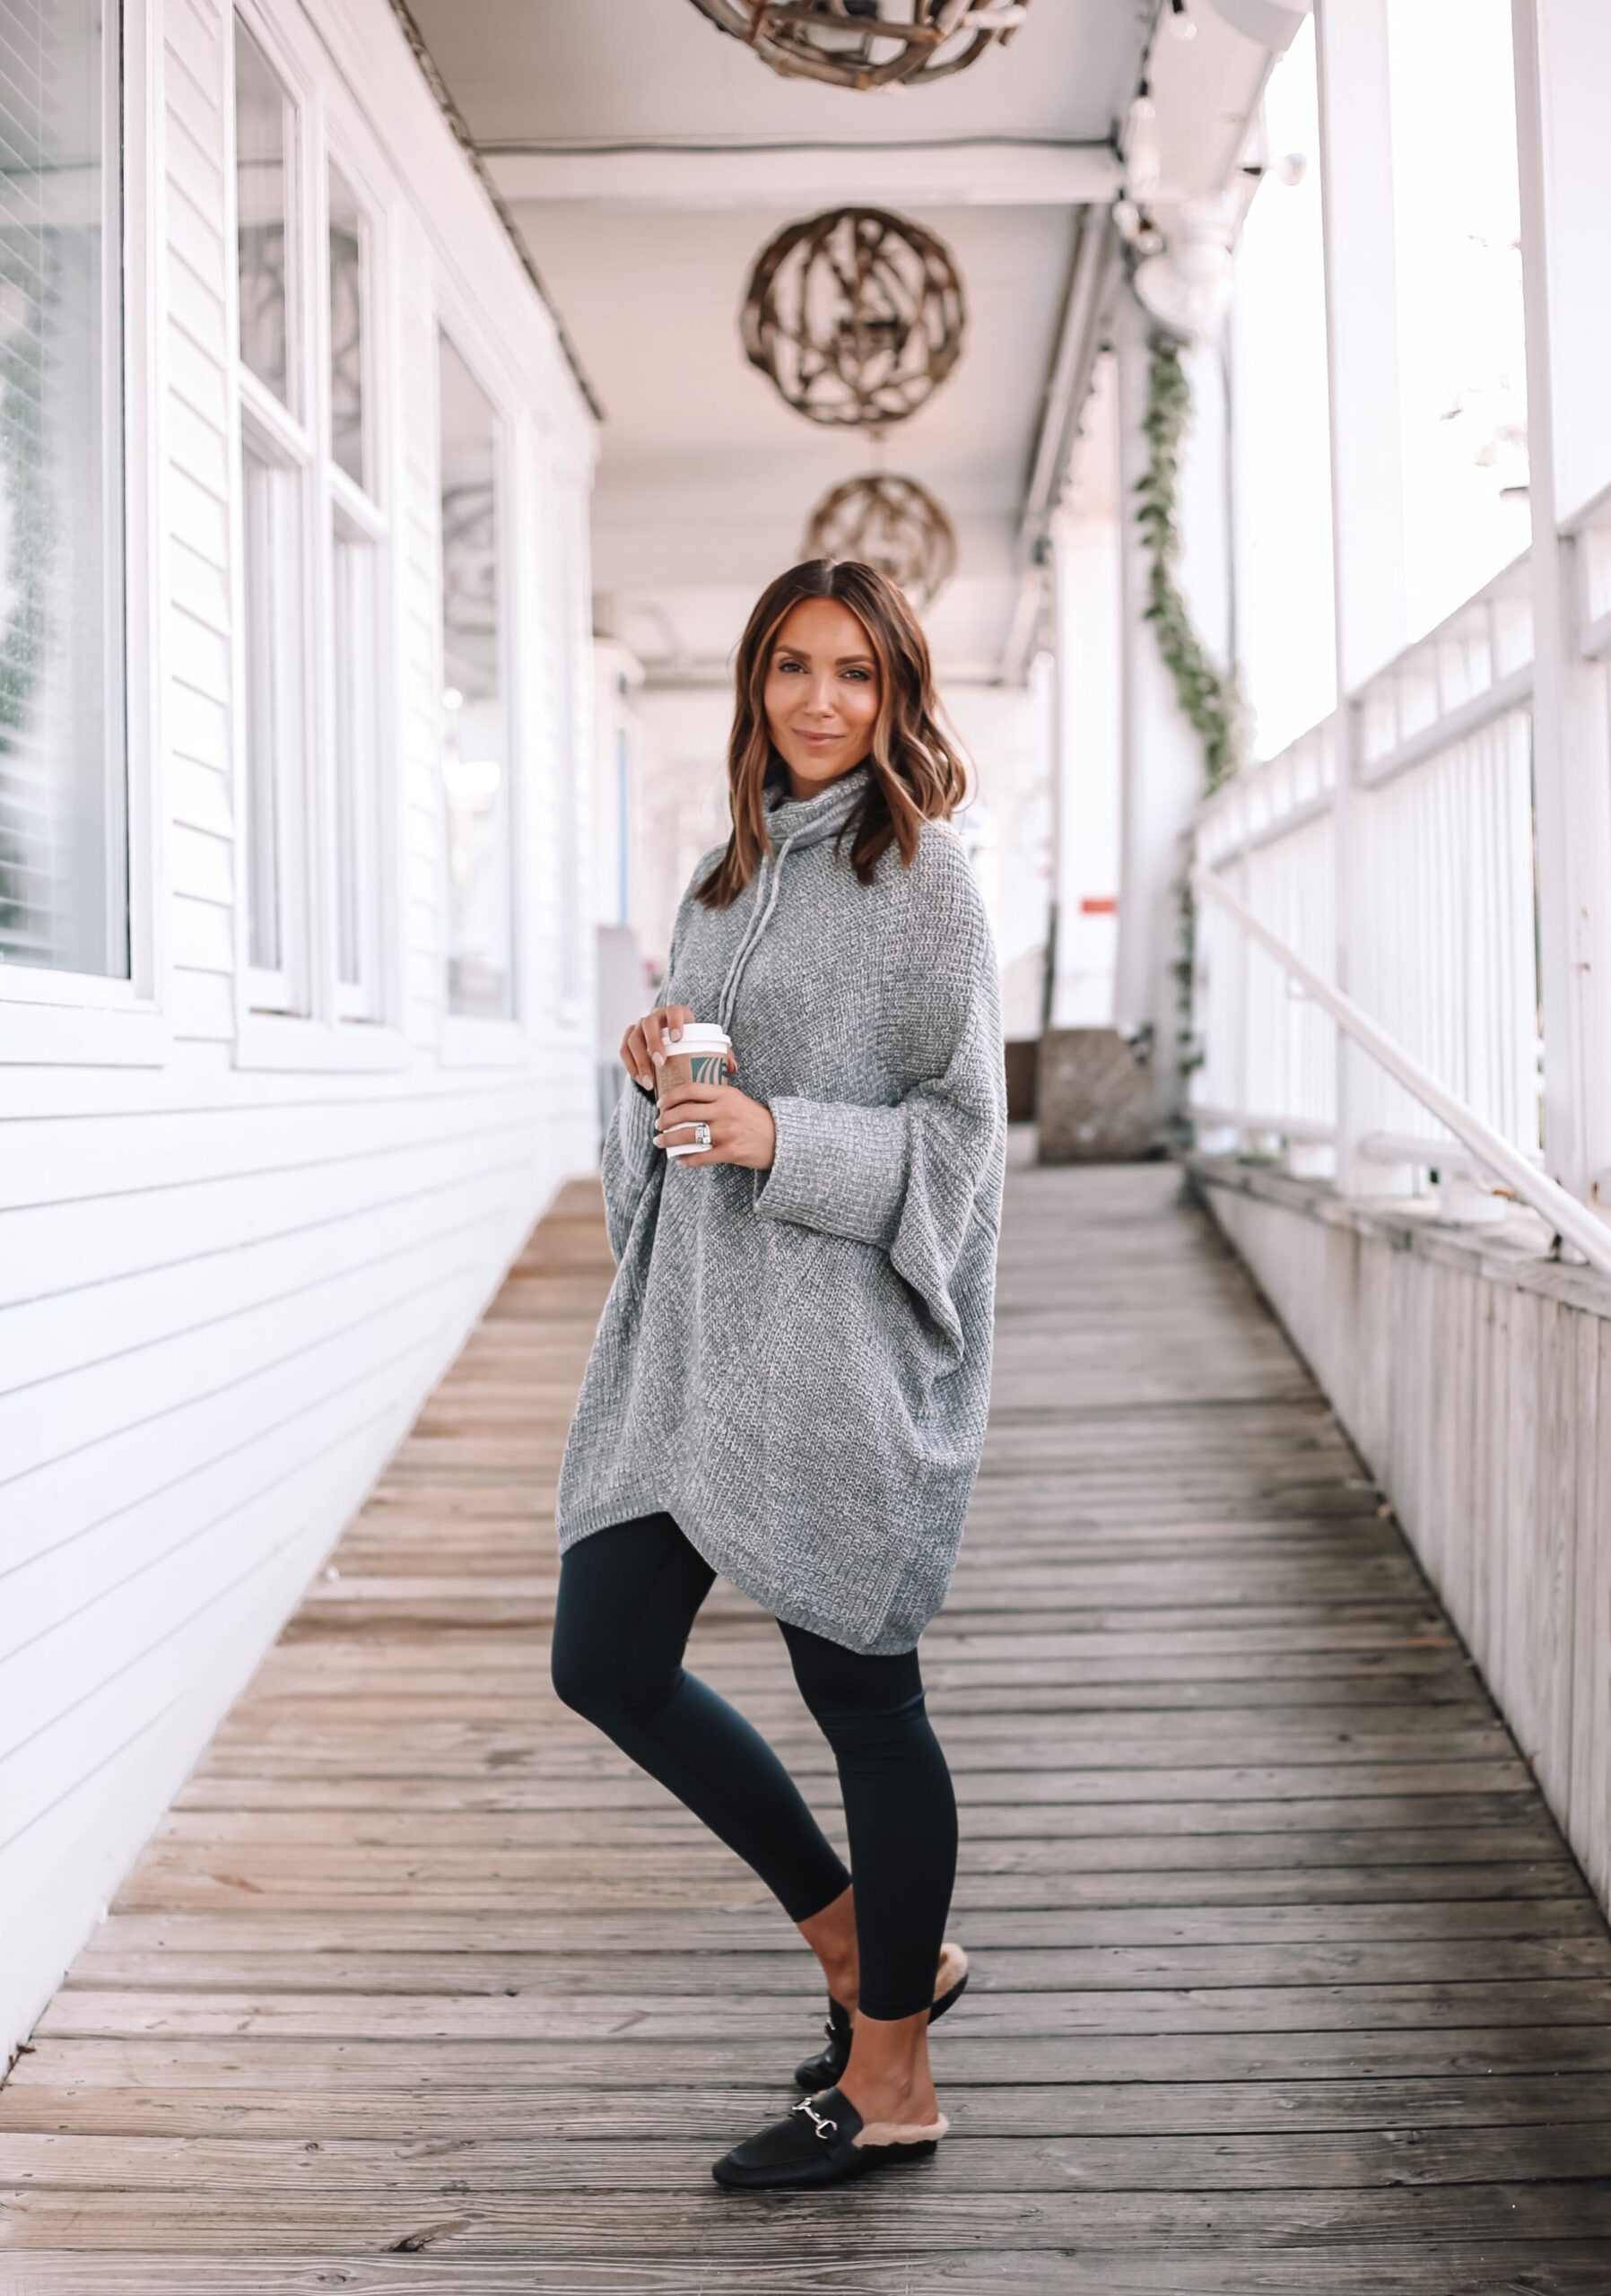 Walmart poncho with leggings and mules, fall outfit idea